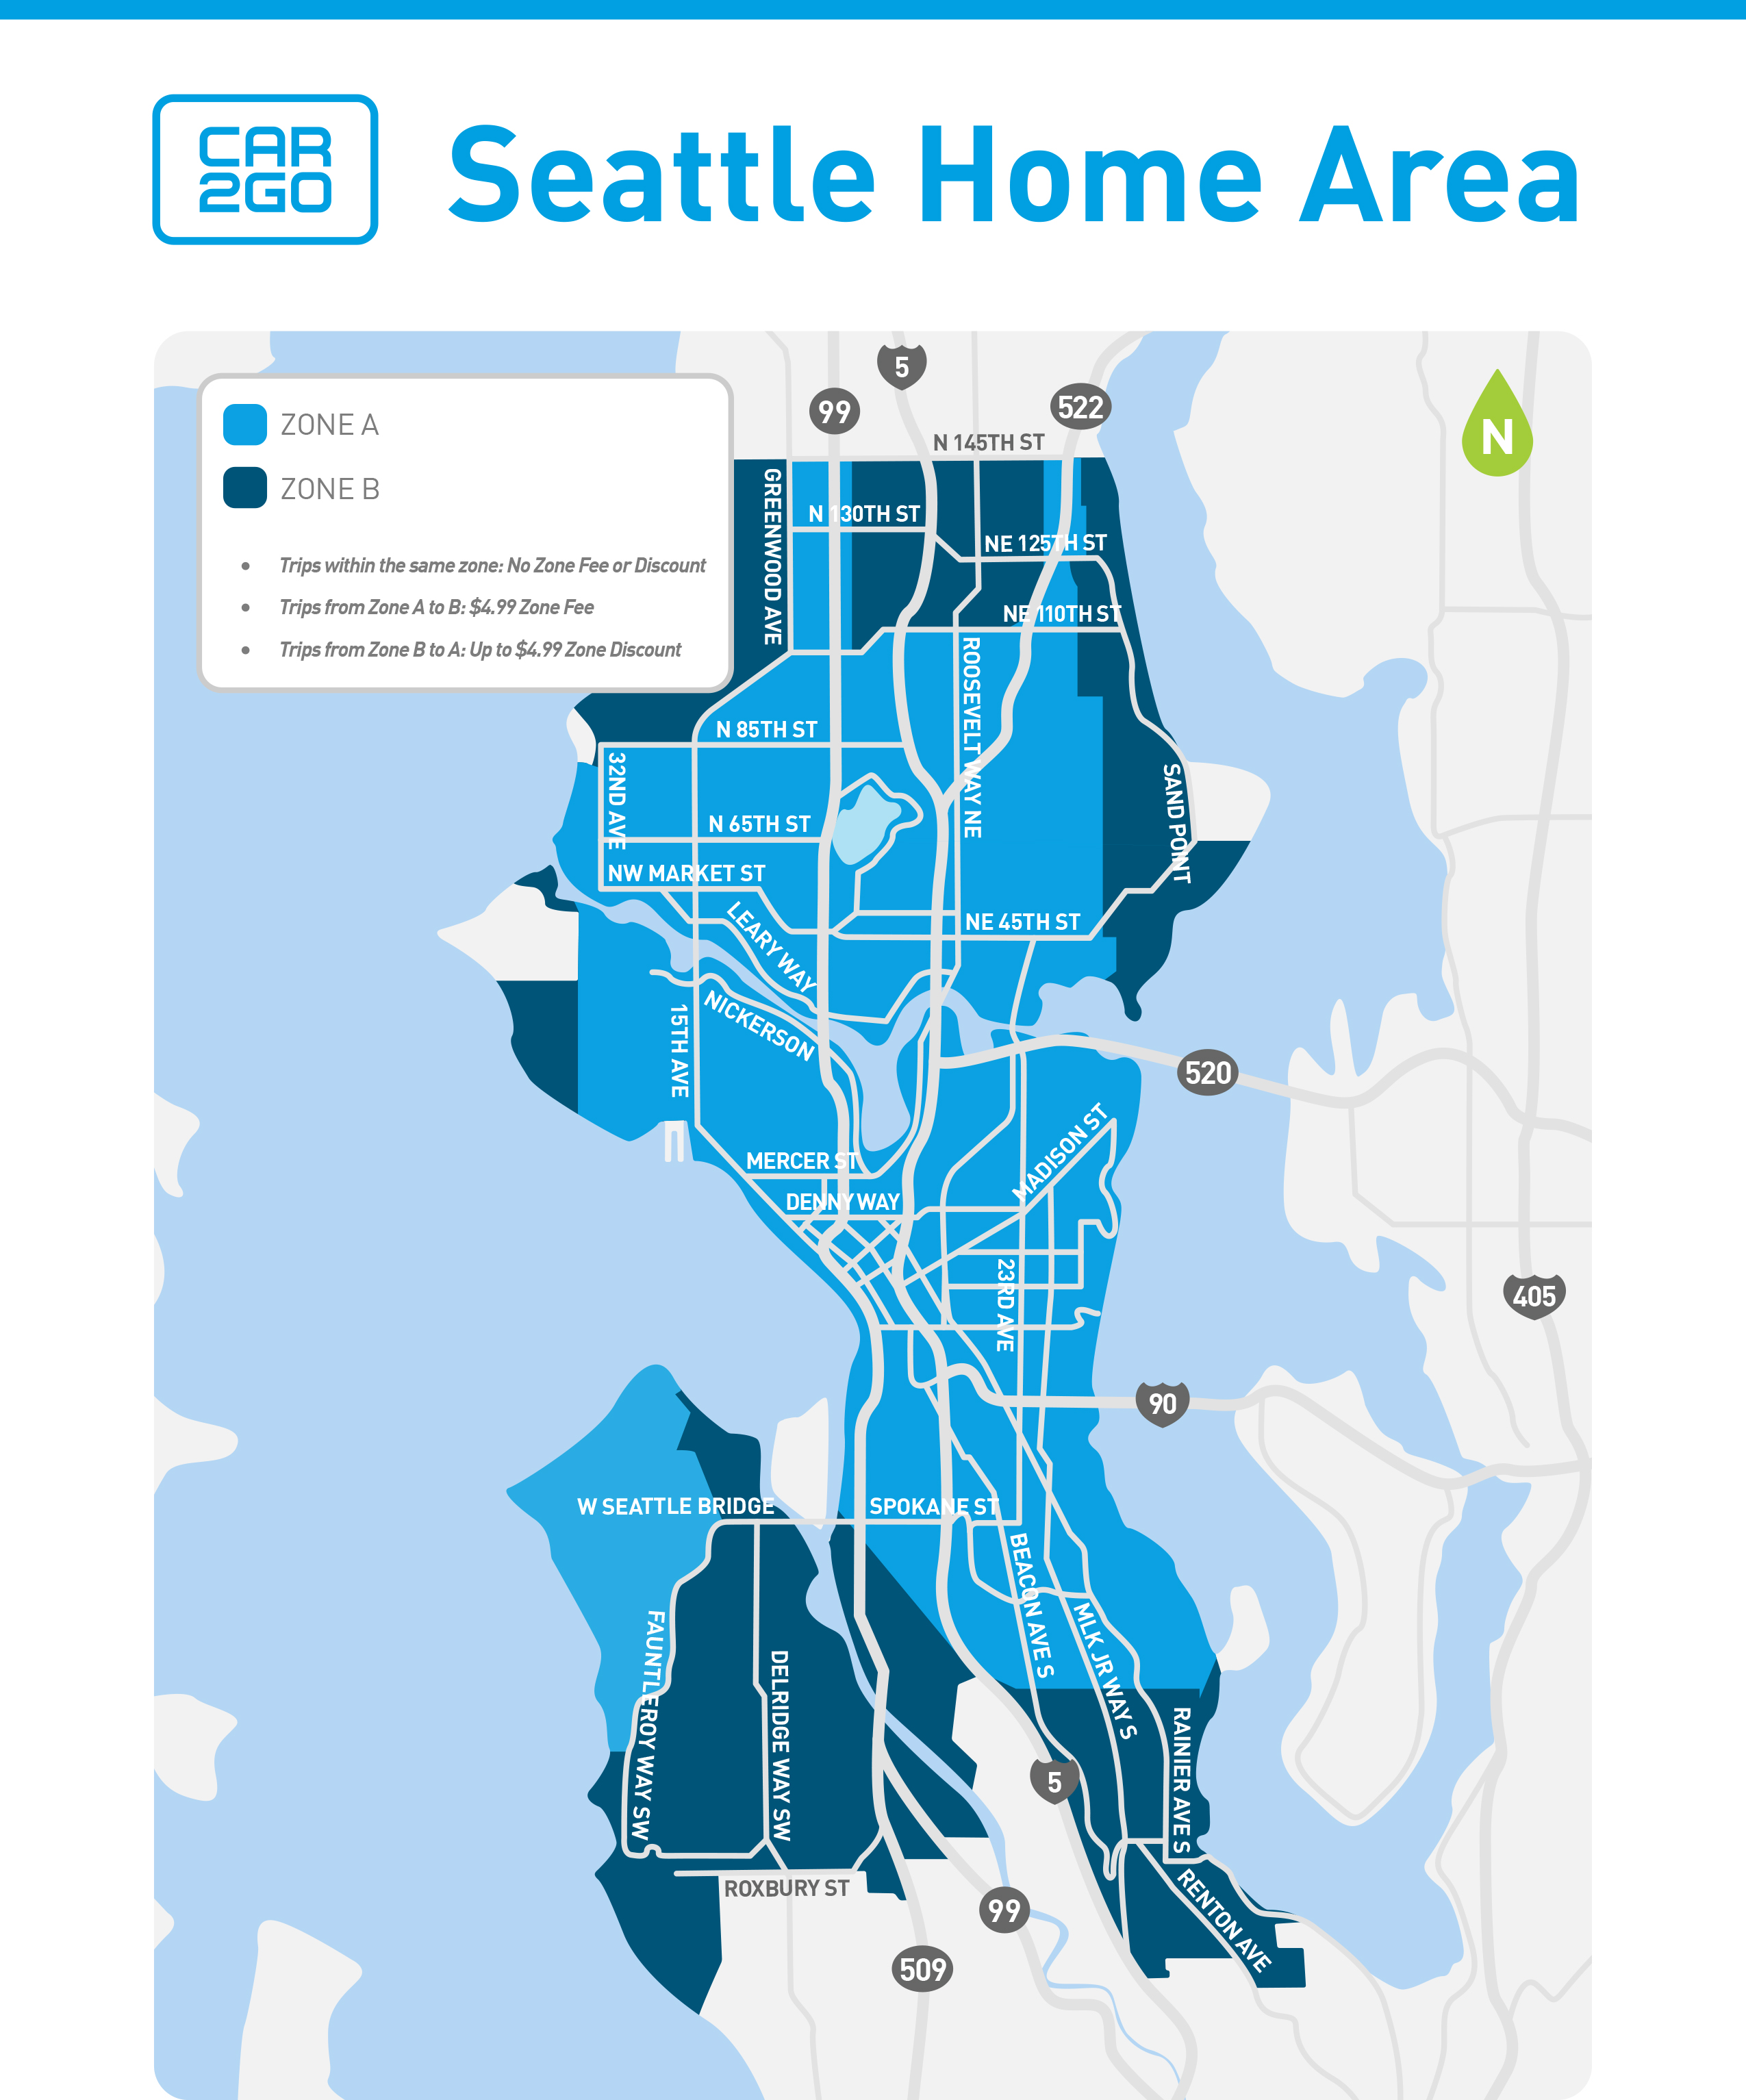 Car To Go Seattle >> Car2go Adds New Zone Based Pricing Structure In Seattle To